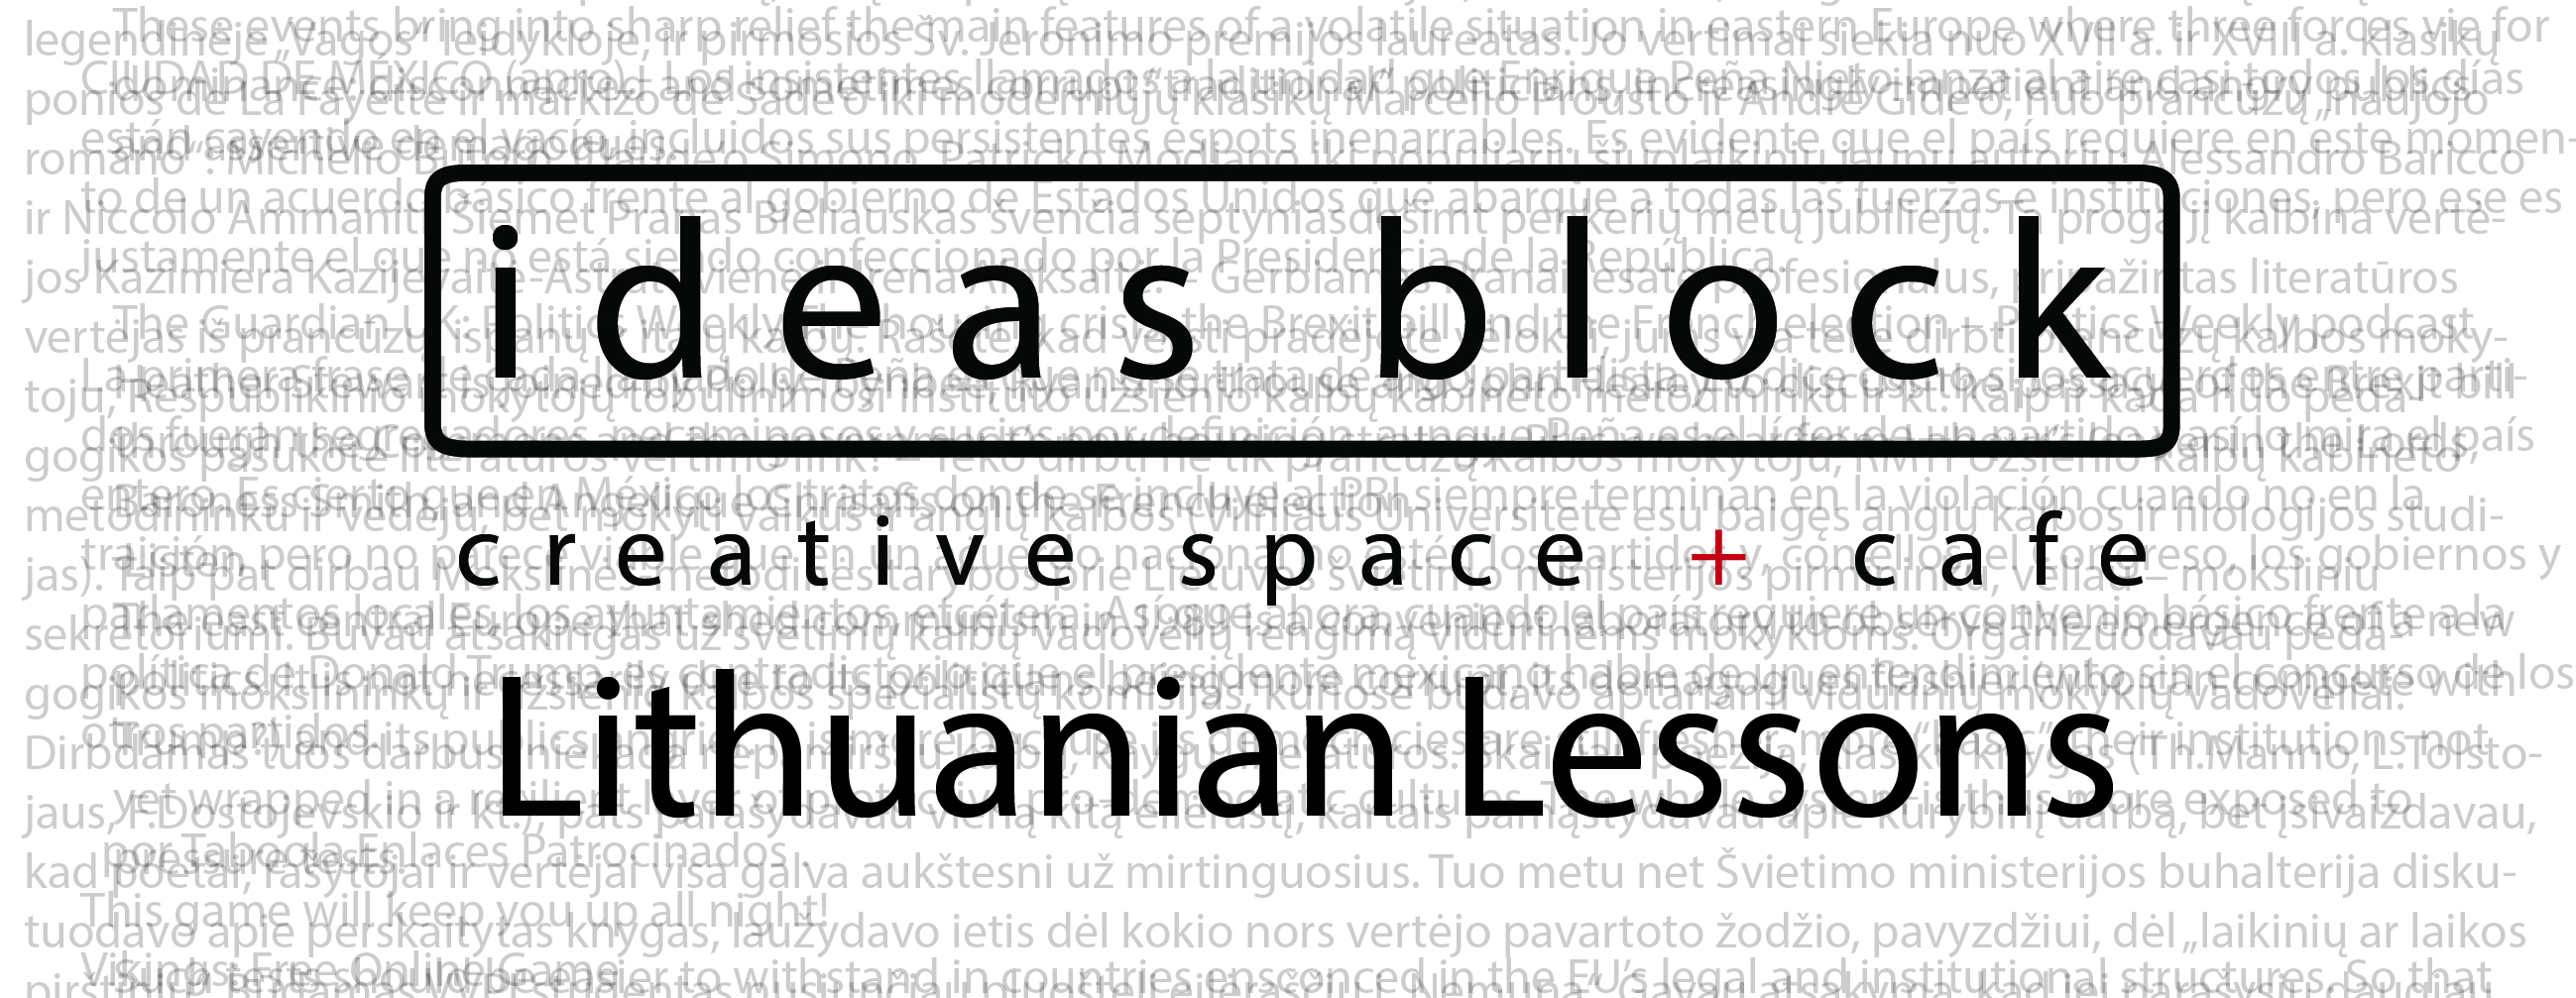 Lithuanian lessons for foreigners in Vilnius